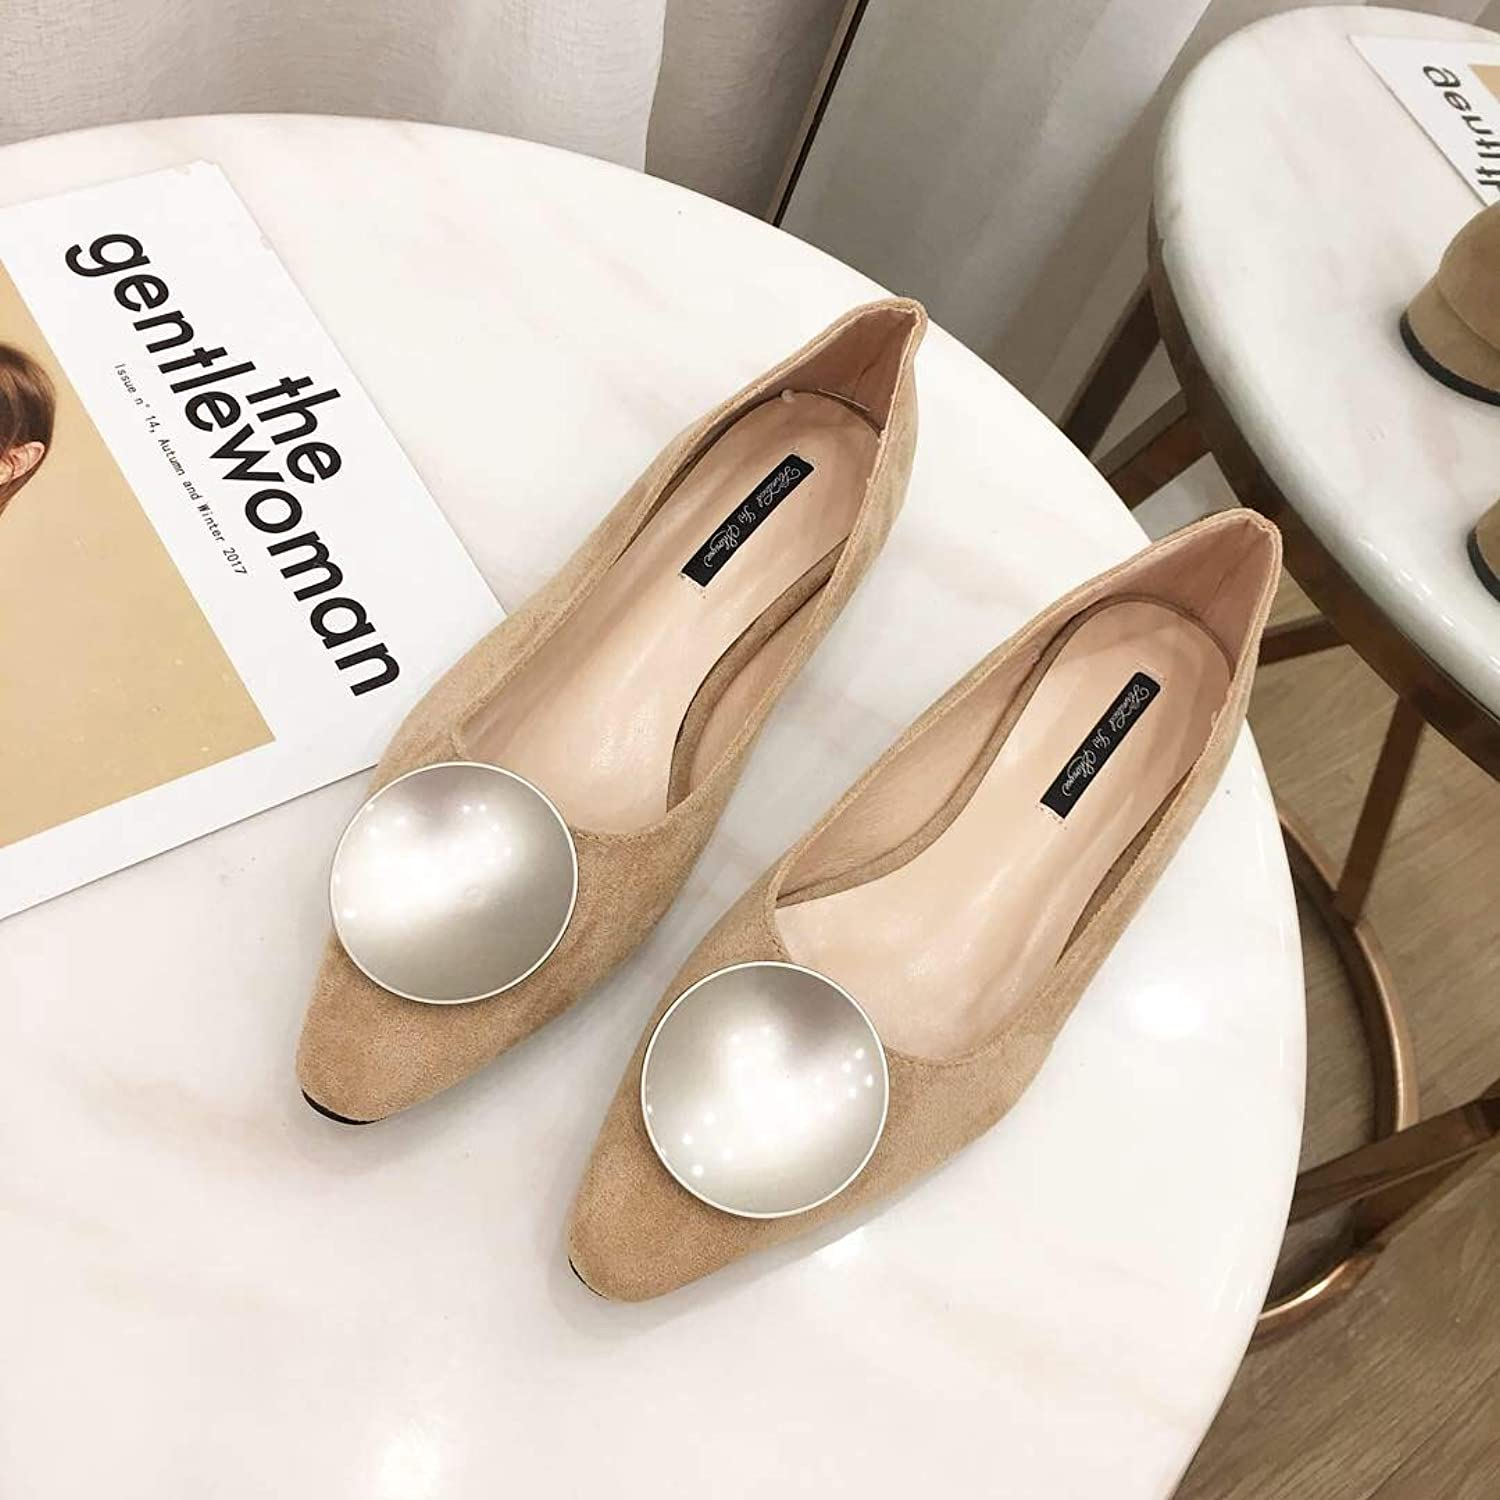 DNJKSA Spring New Women's shoes 2019 Korean Suede Metal Button Sandals Shallow Low-Heeled Work Flat-Soled shoes